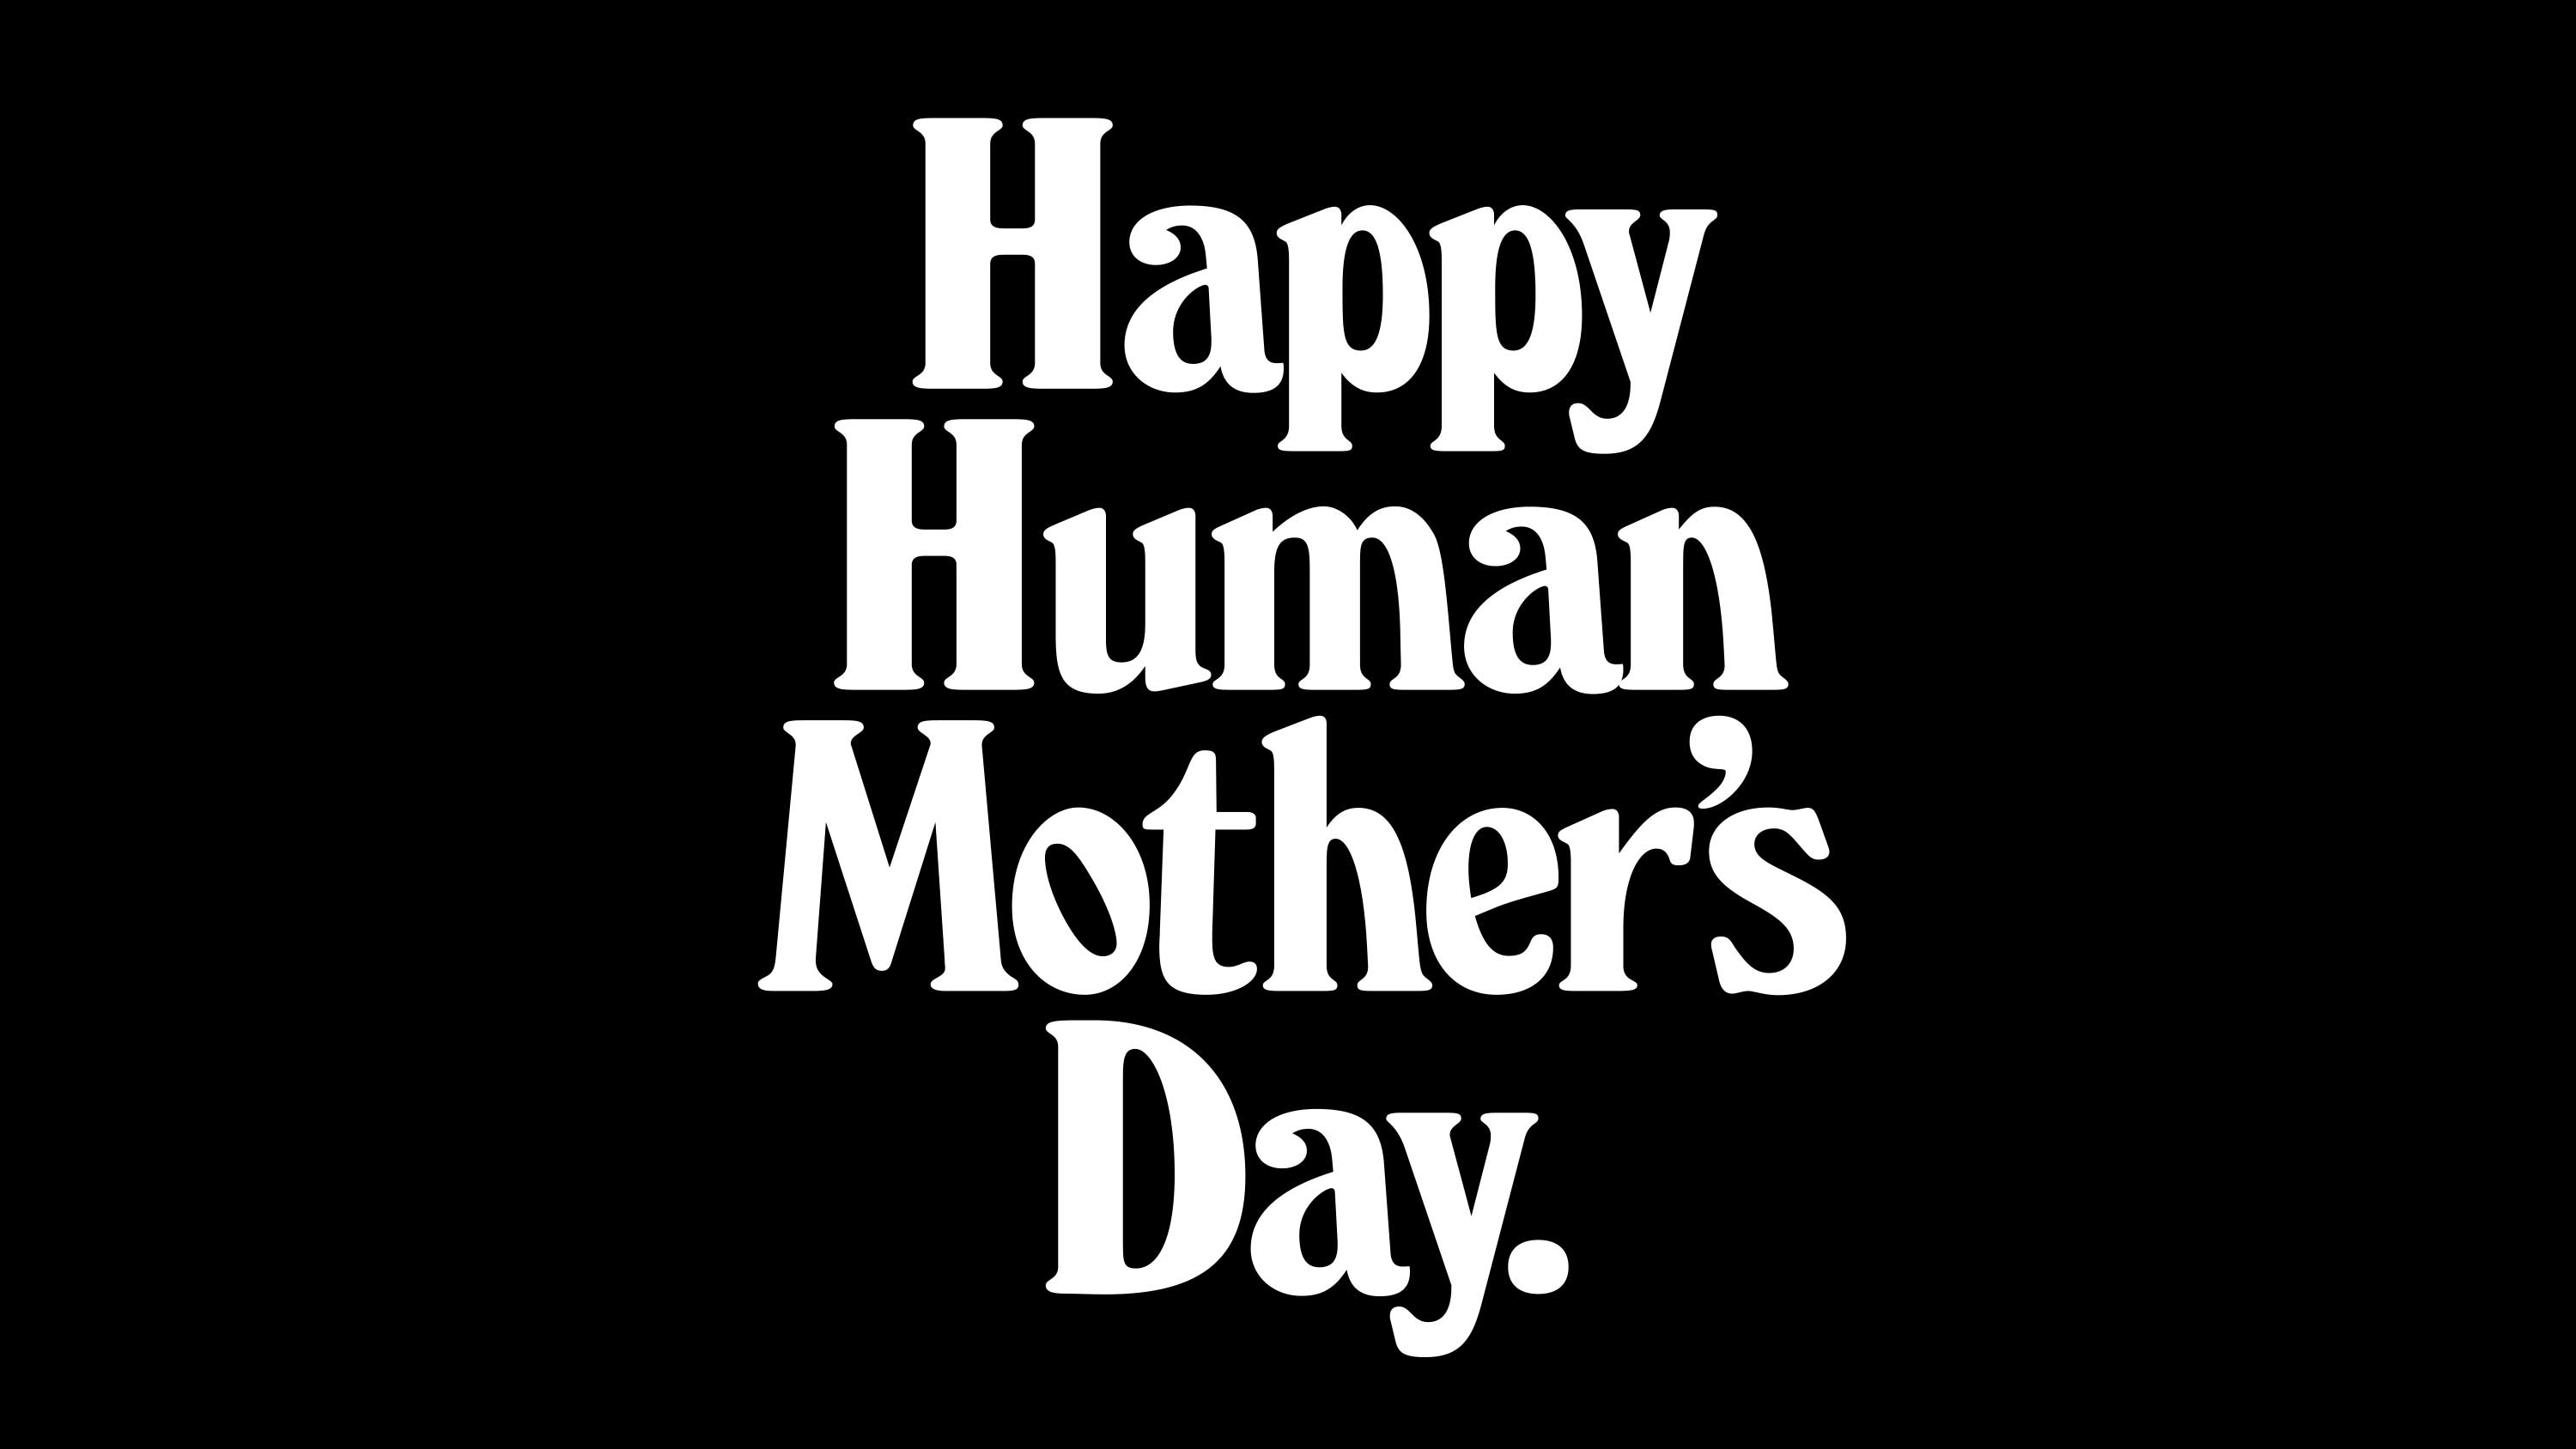 Matthijs Matt van Leeuwen, Alex Nassour, Alex Maleski, Mother New York, Typography, Happy Human Mother's Day